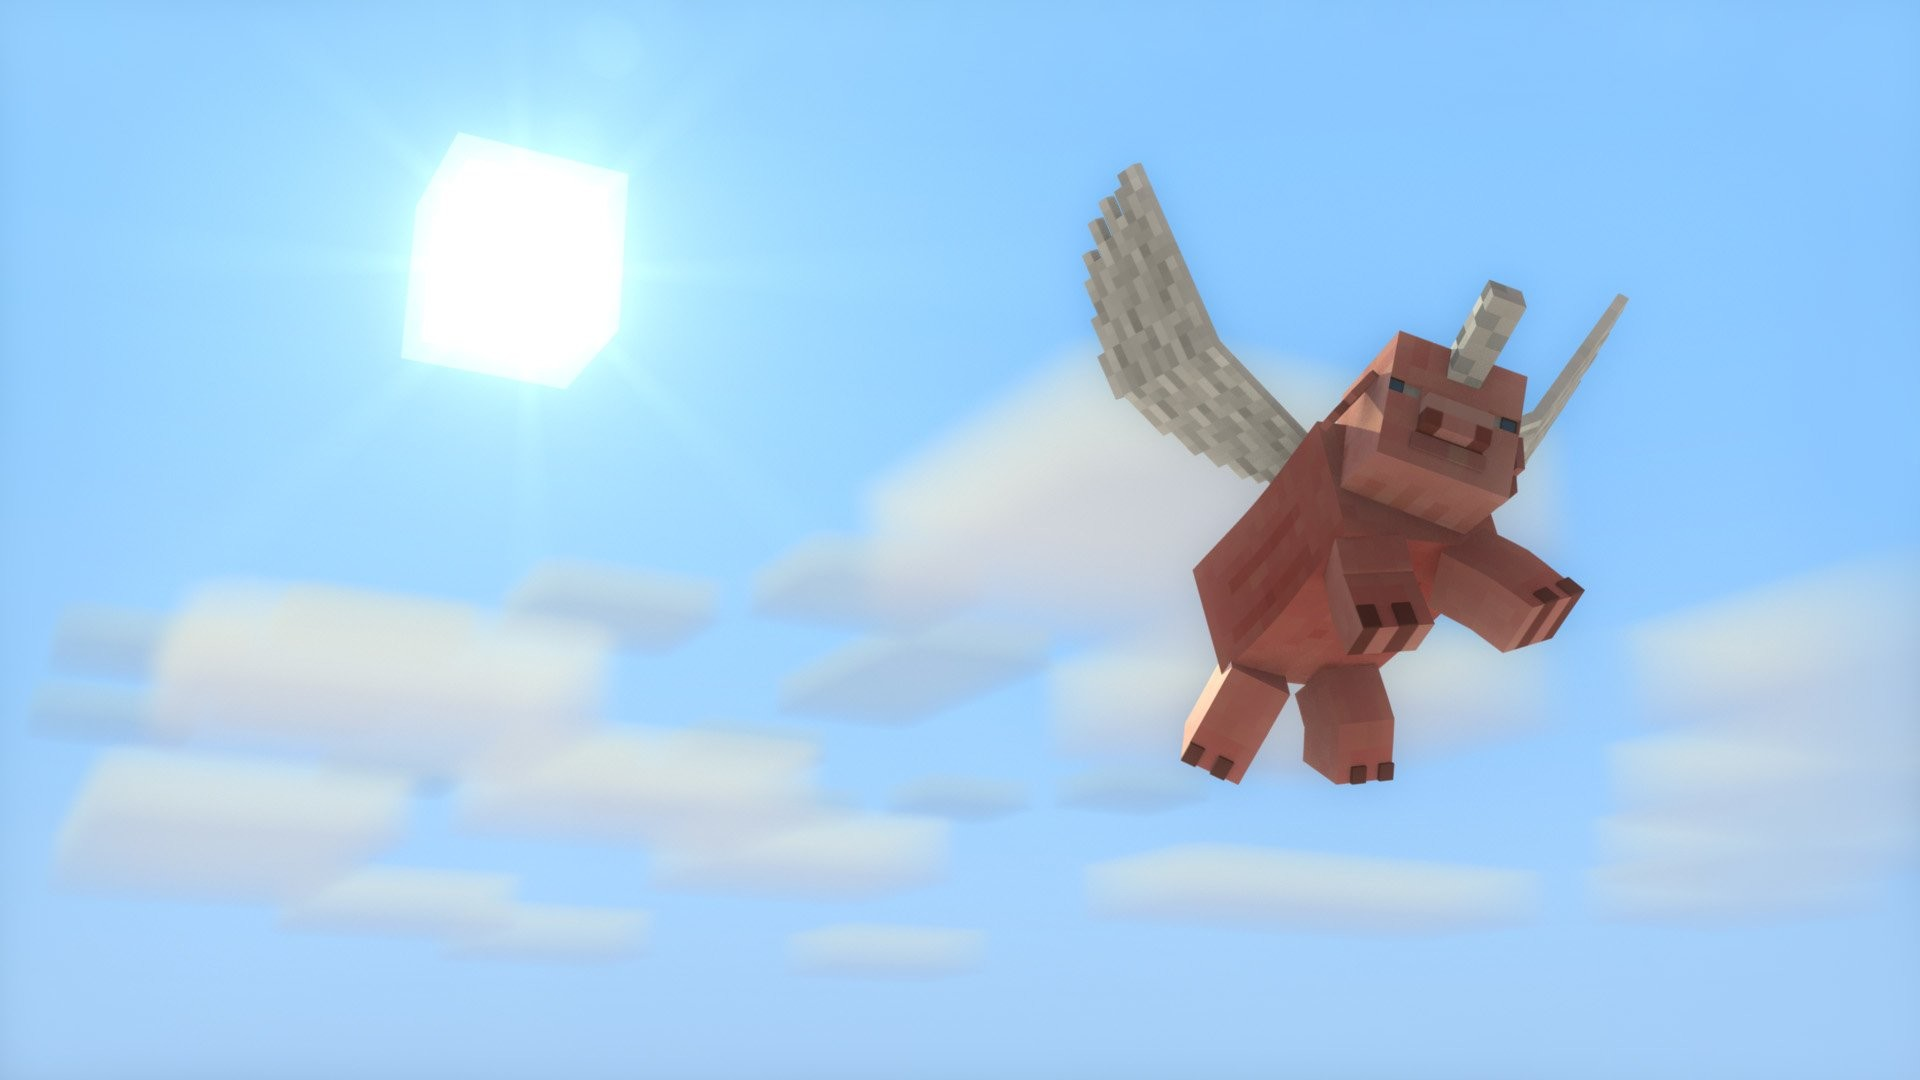 Explore More Wallpapers in the Minecraft Subcategory!